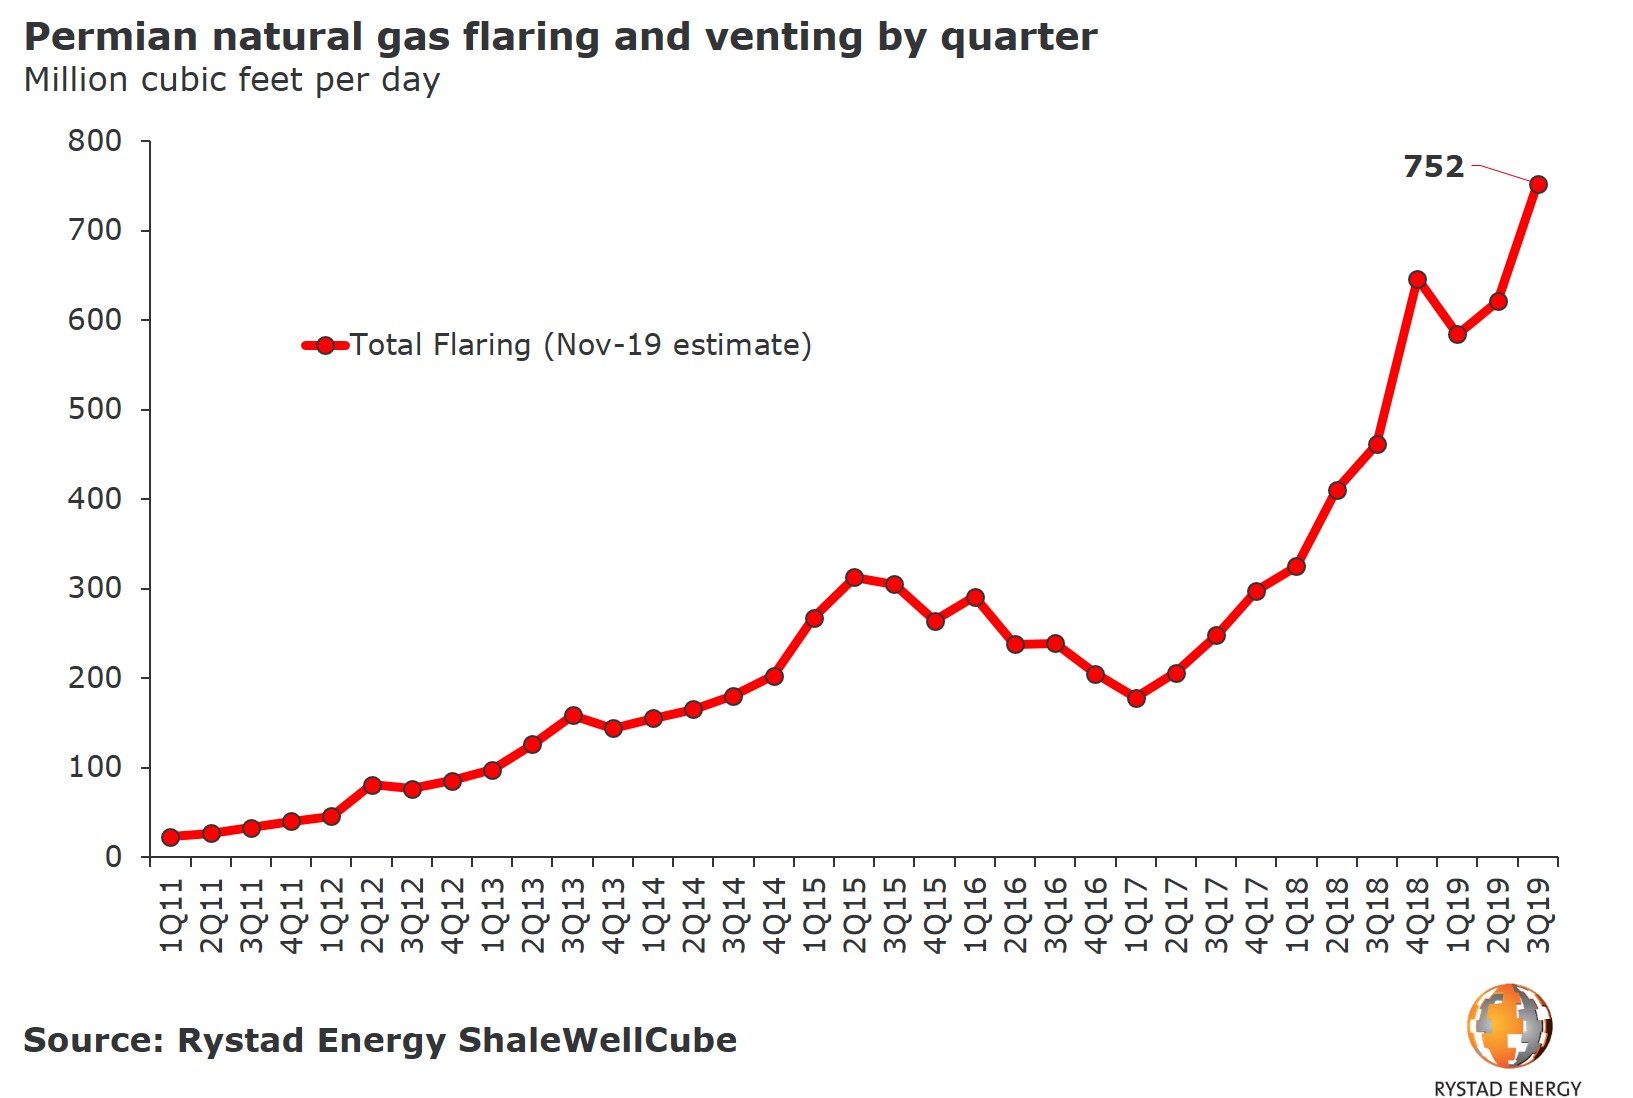 20191105_PR Chart Permian nat gas flaring and venting 2011 2019 by quarter.jpg